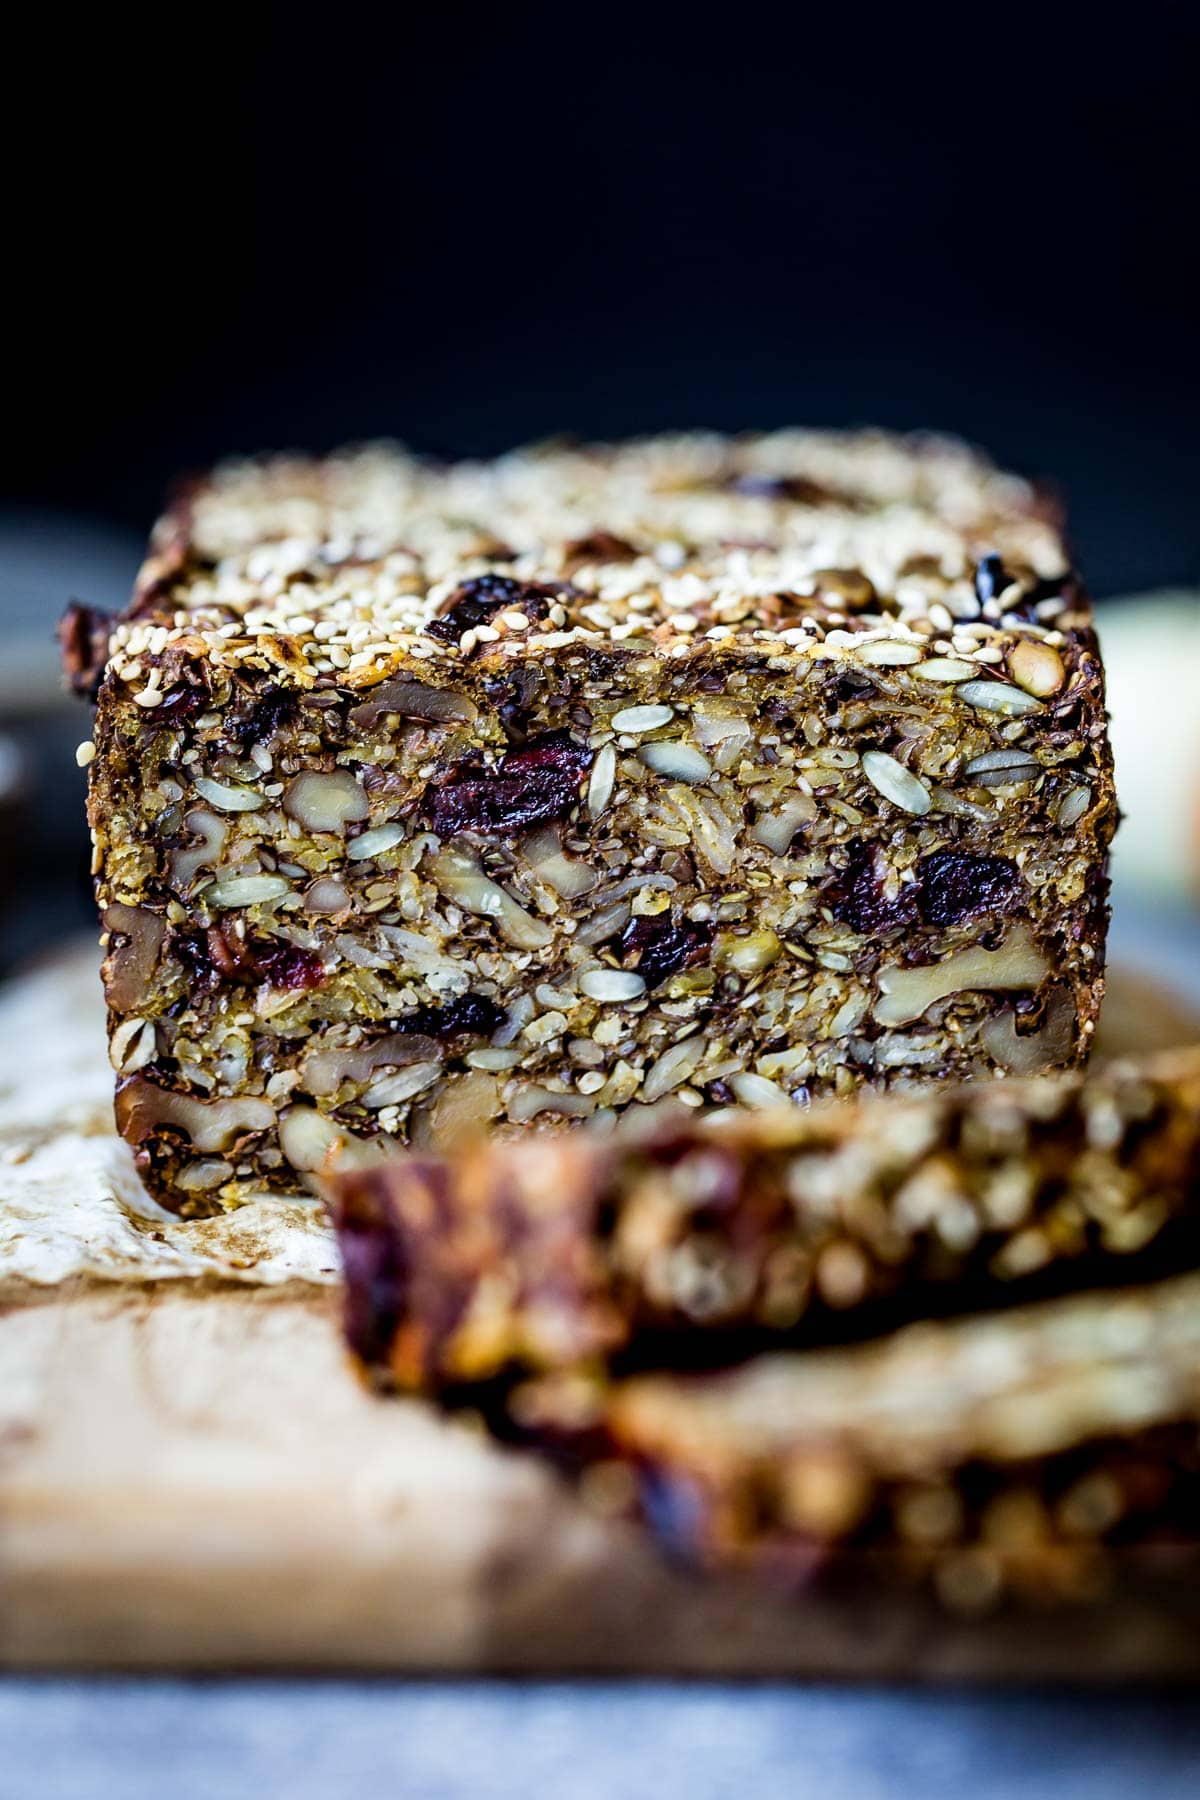 healthy nut and seed bread sliced from the front view